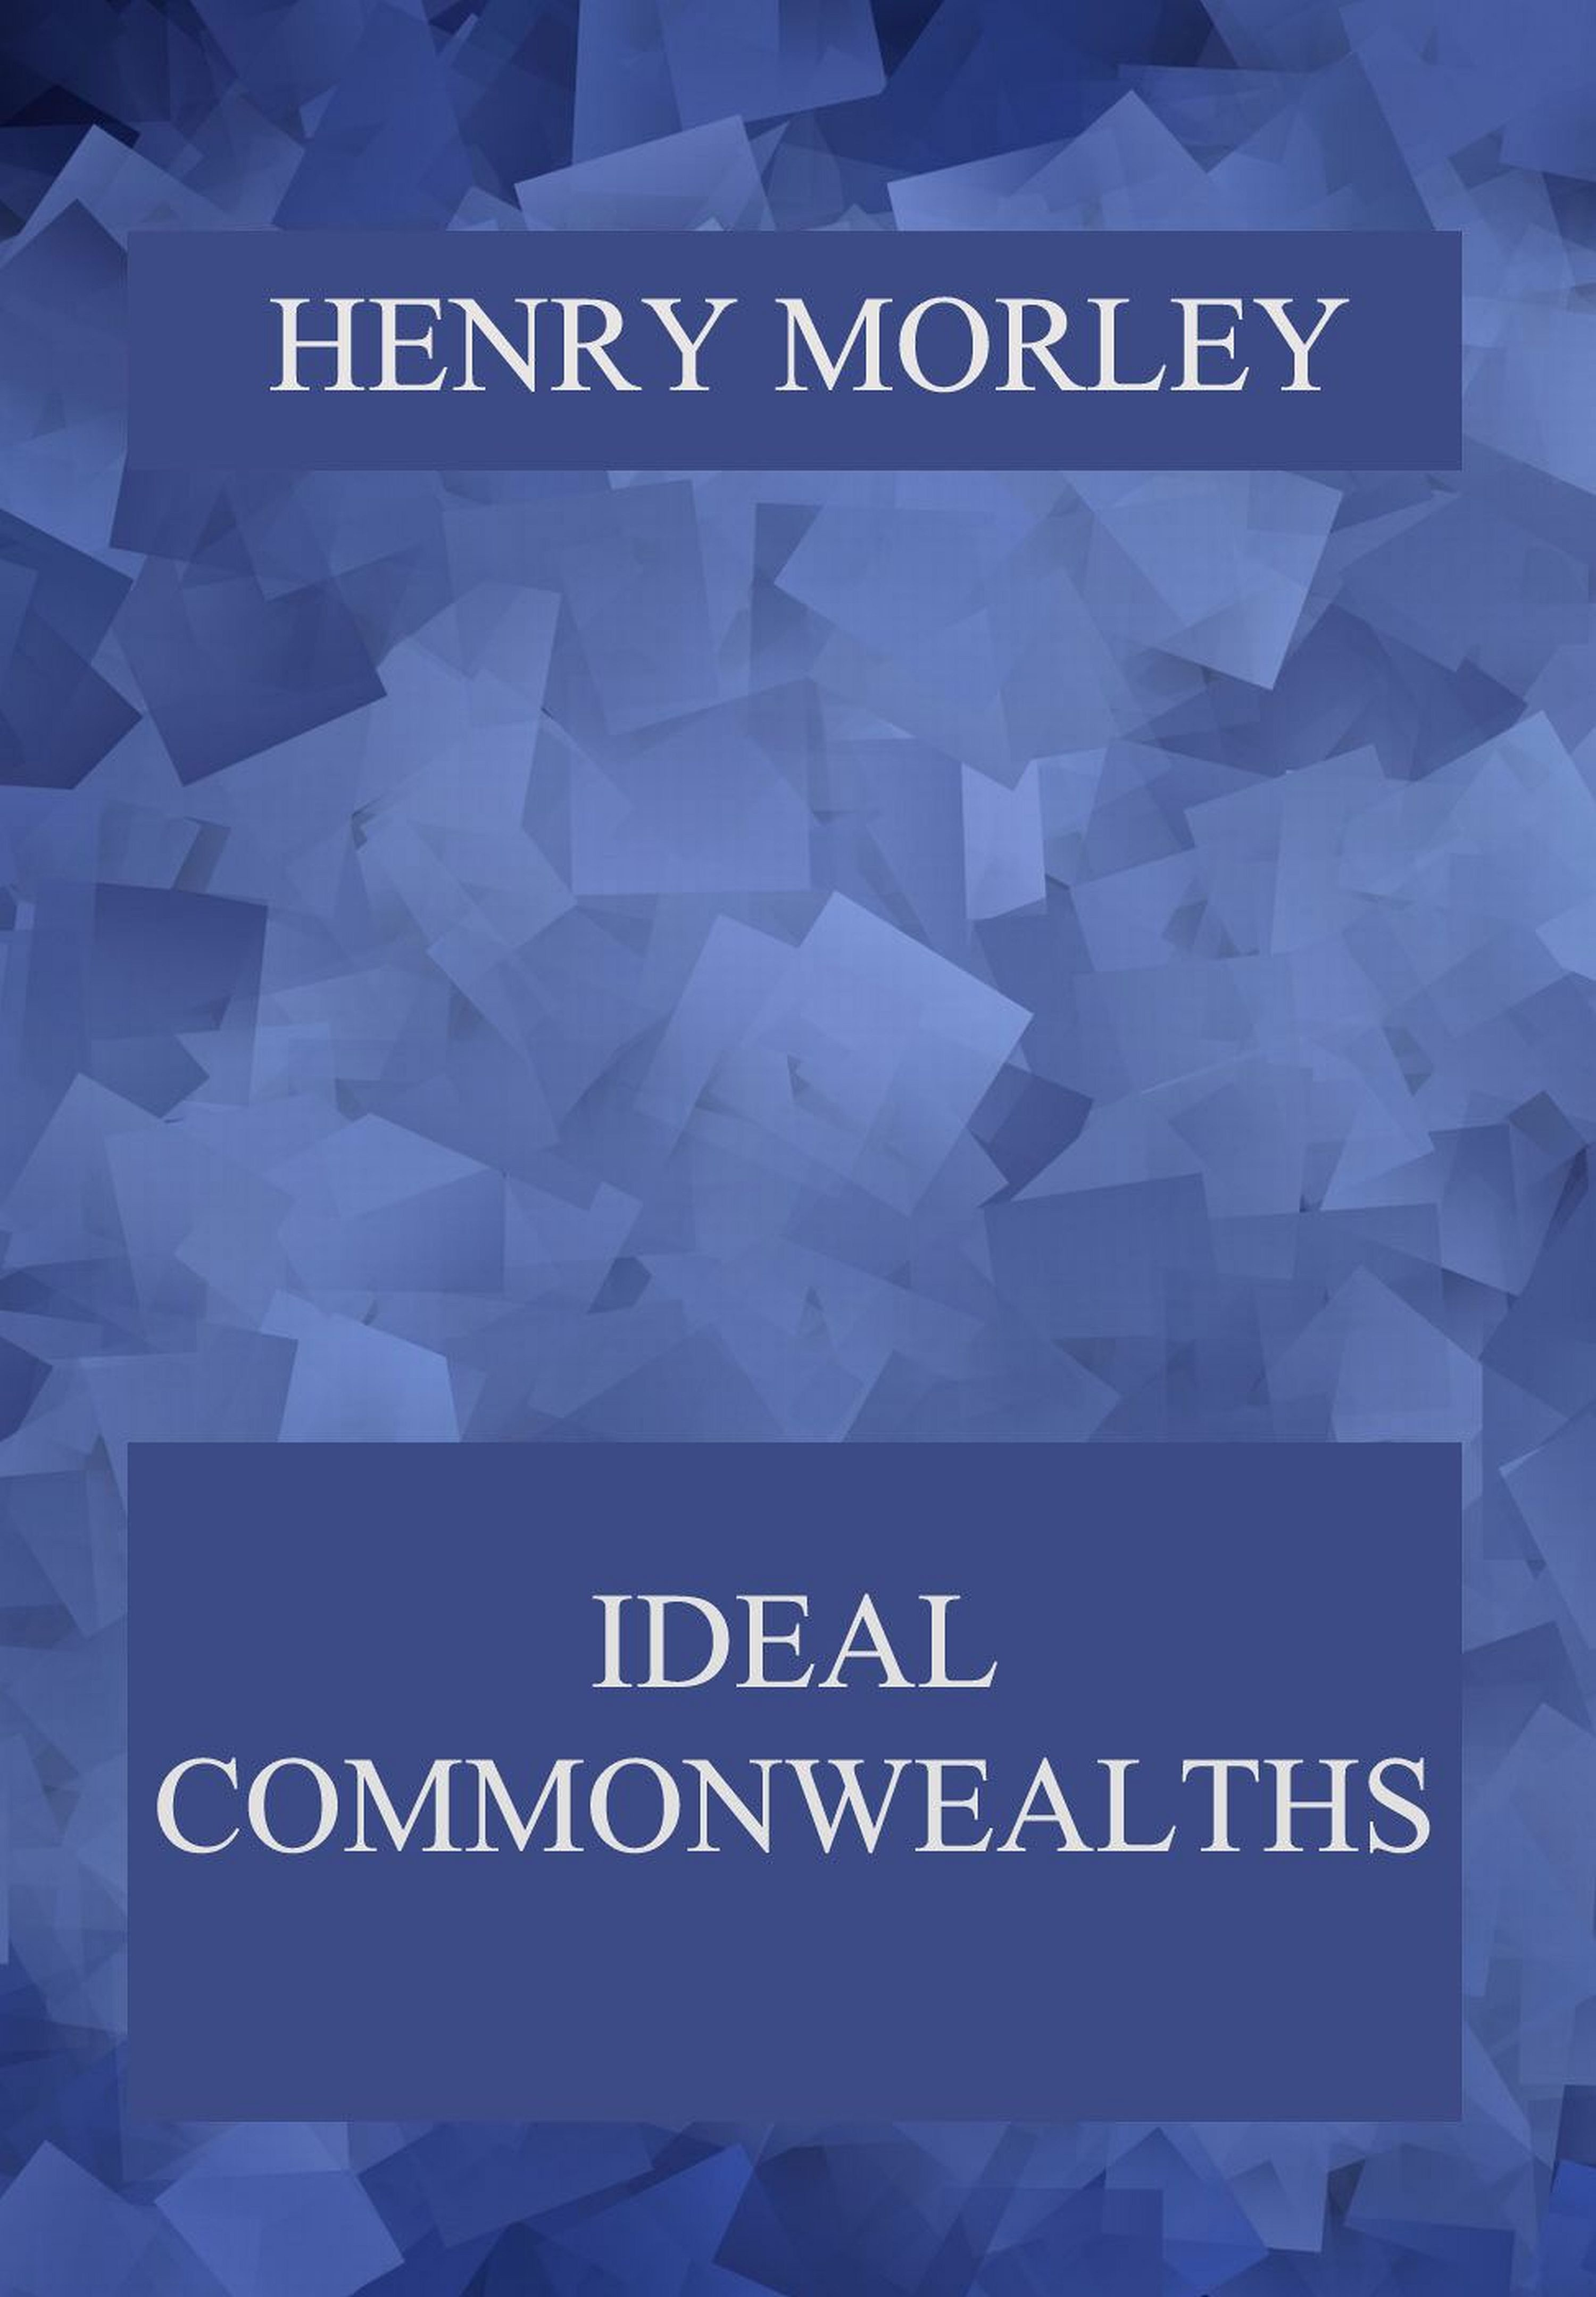 Henry Morley Ideal Commonwealths henry morley ideal commonwealths